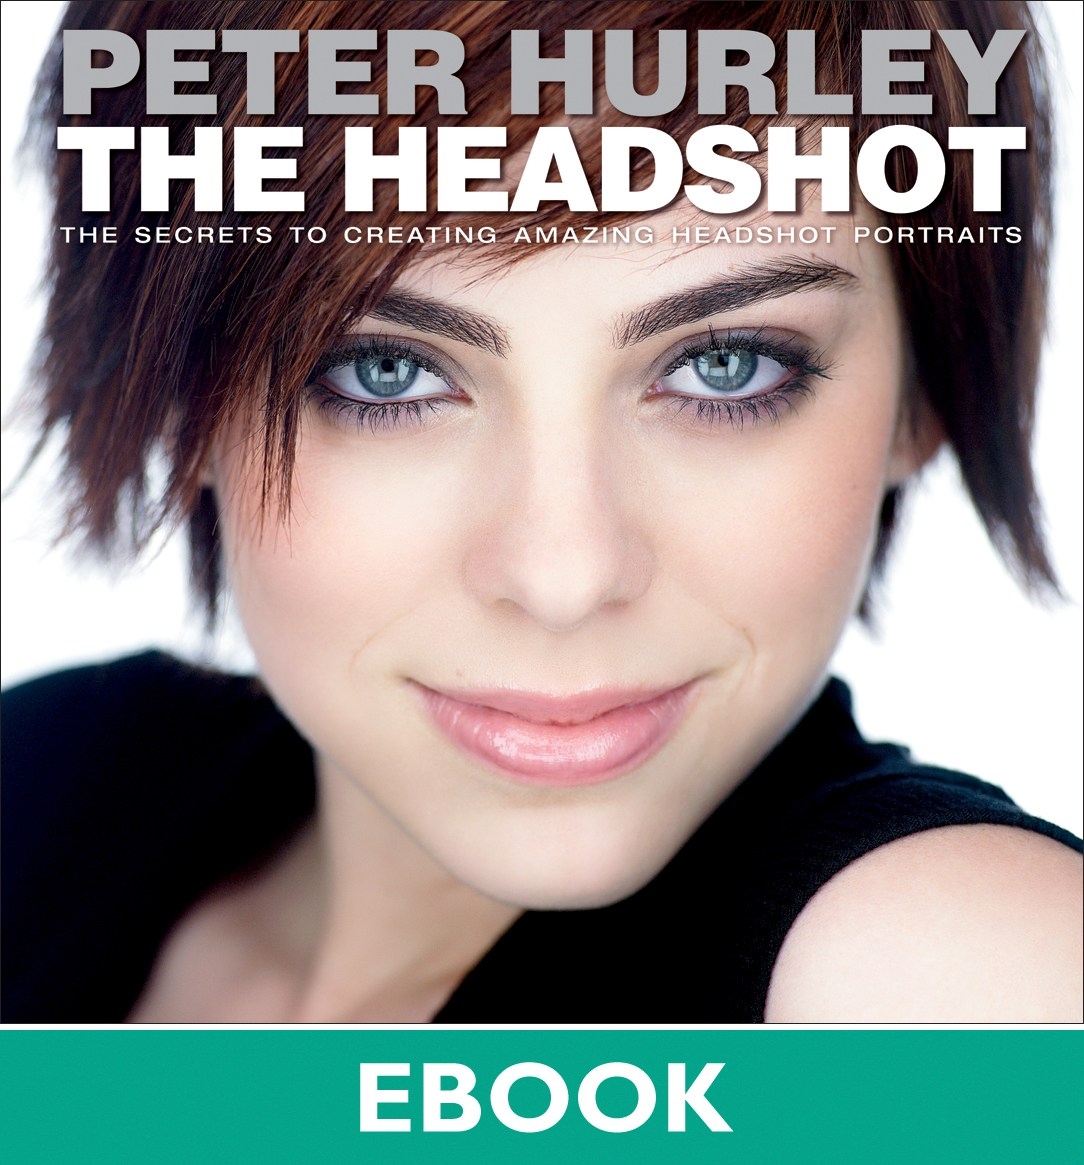 Headshot, The: The Secrets to Creating Amazing Headshot Portraits